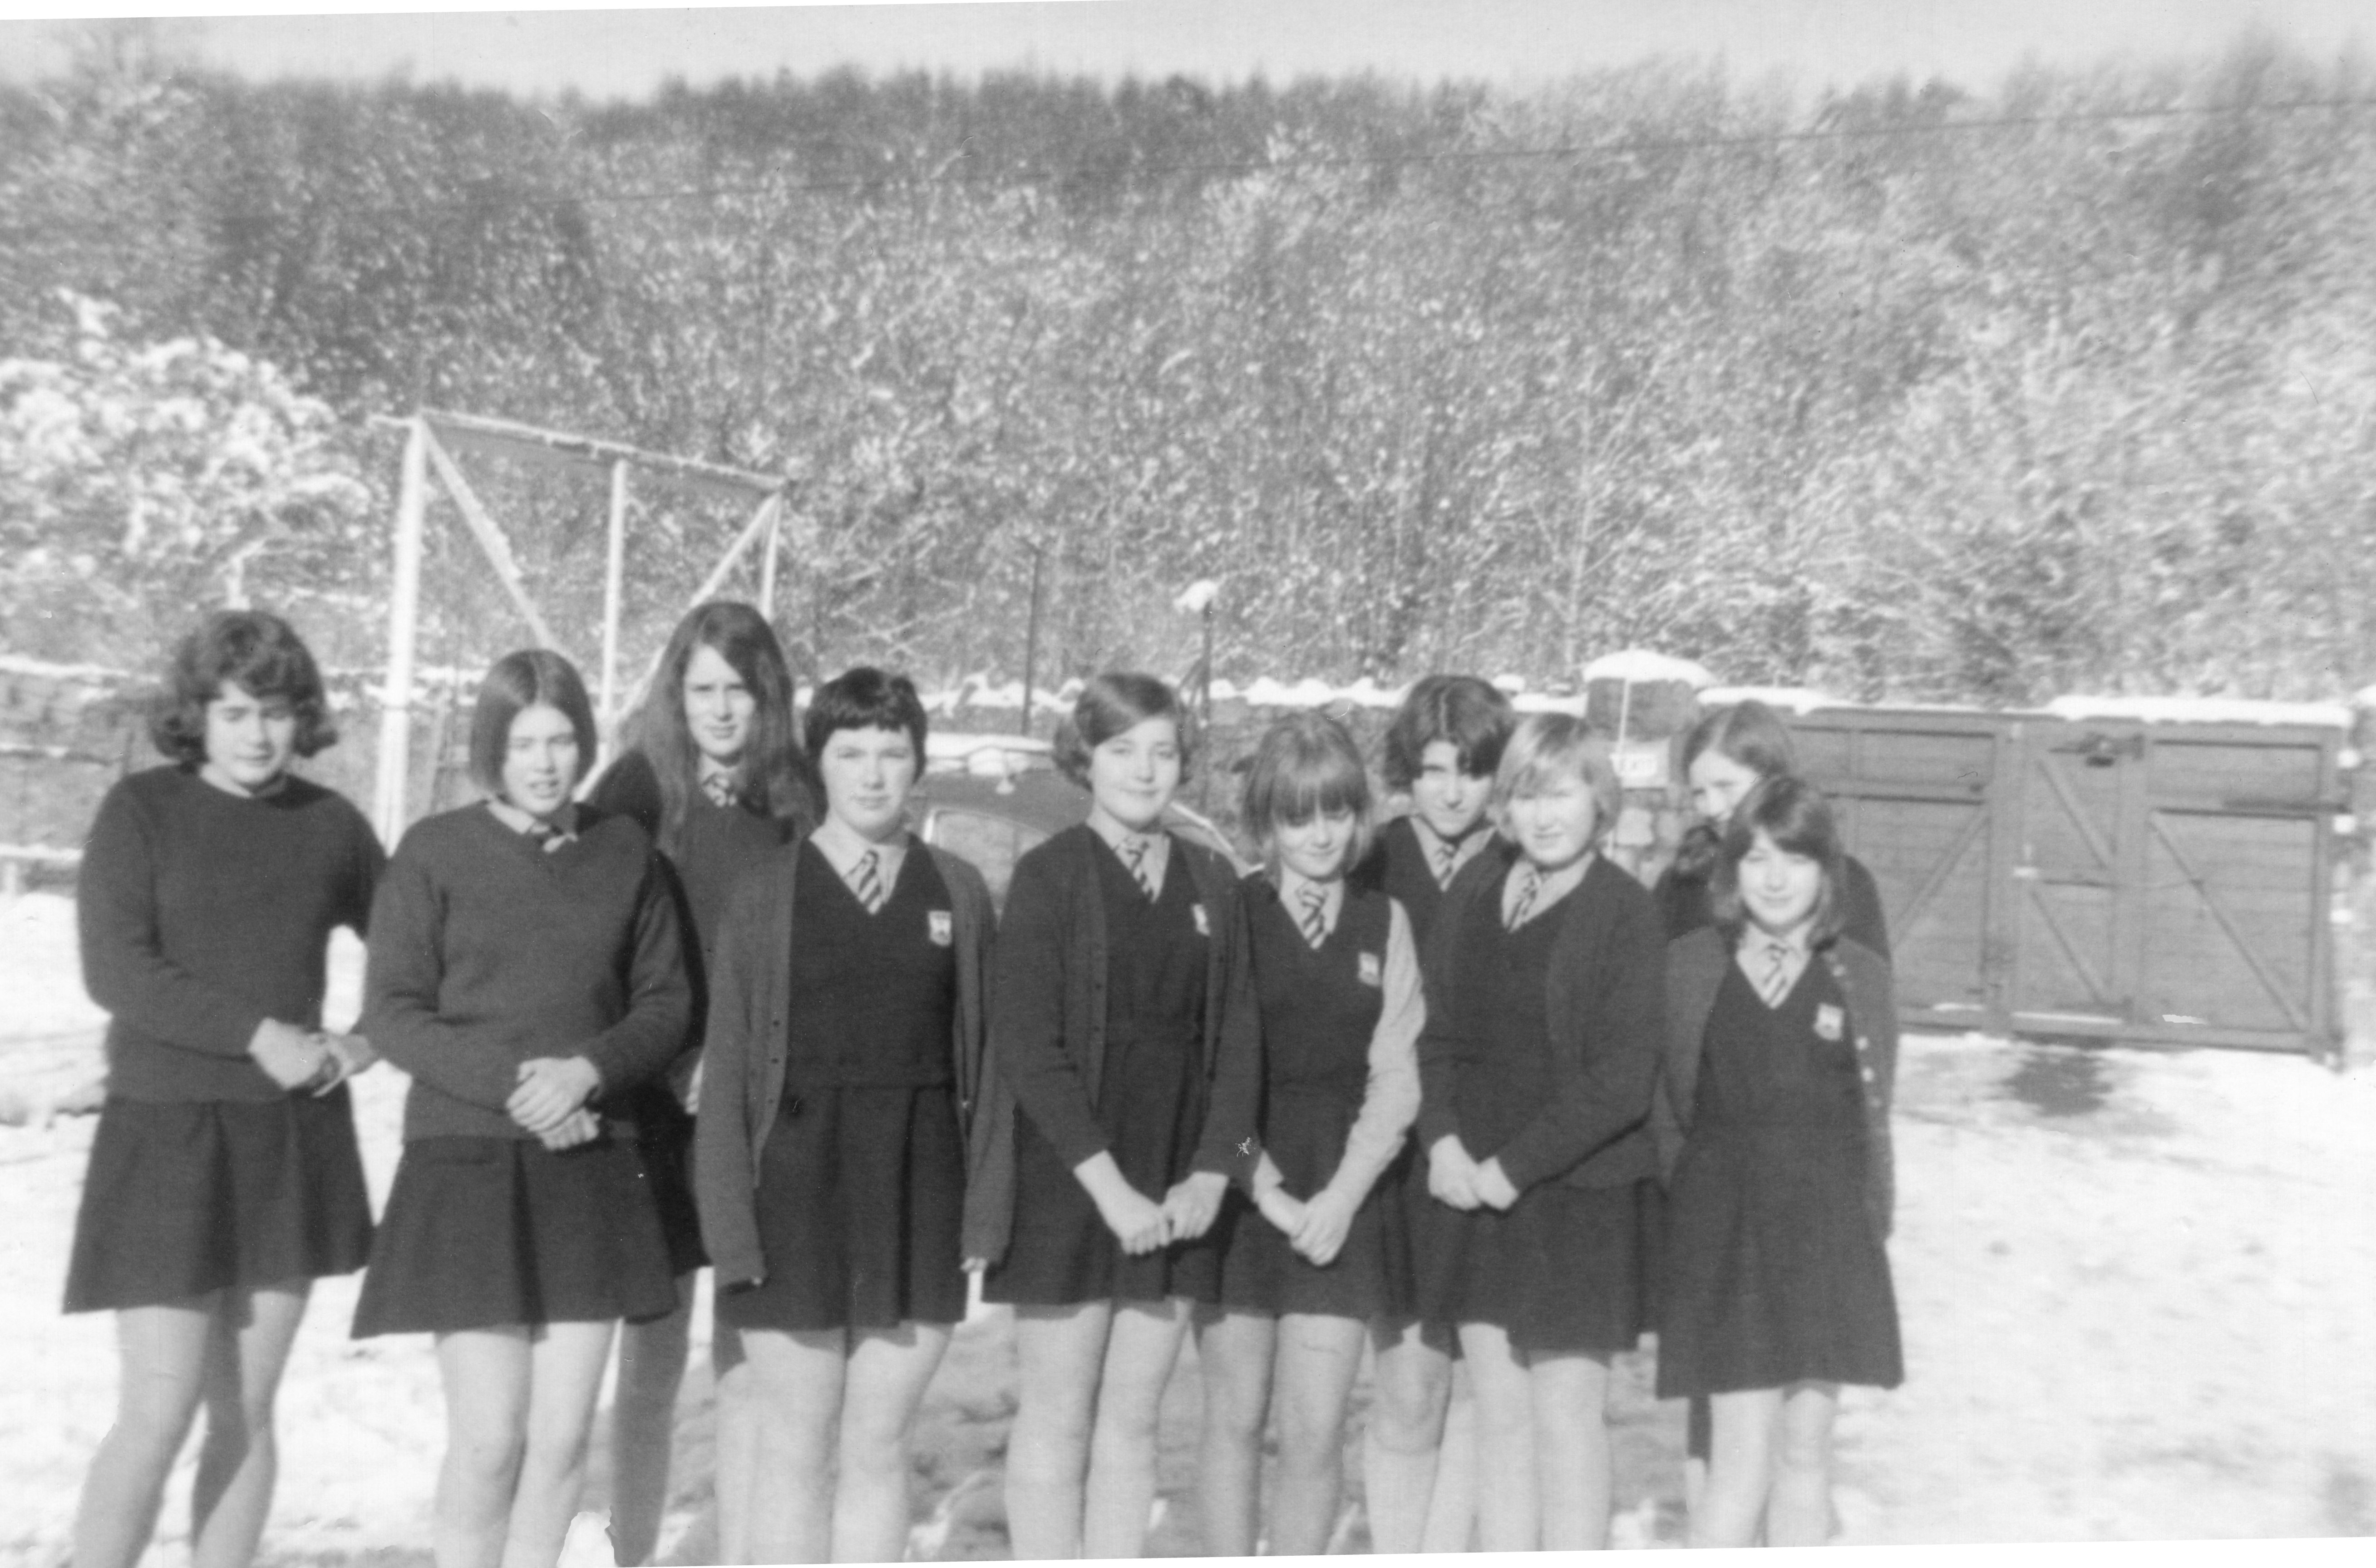 Group on a snowy day c 1968